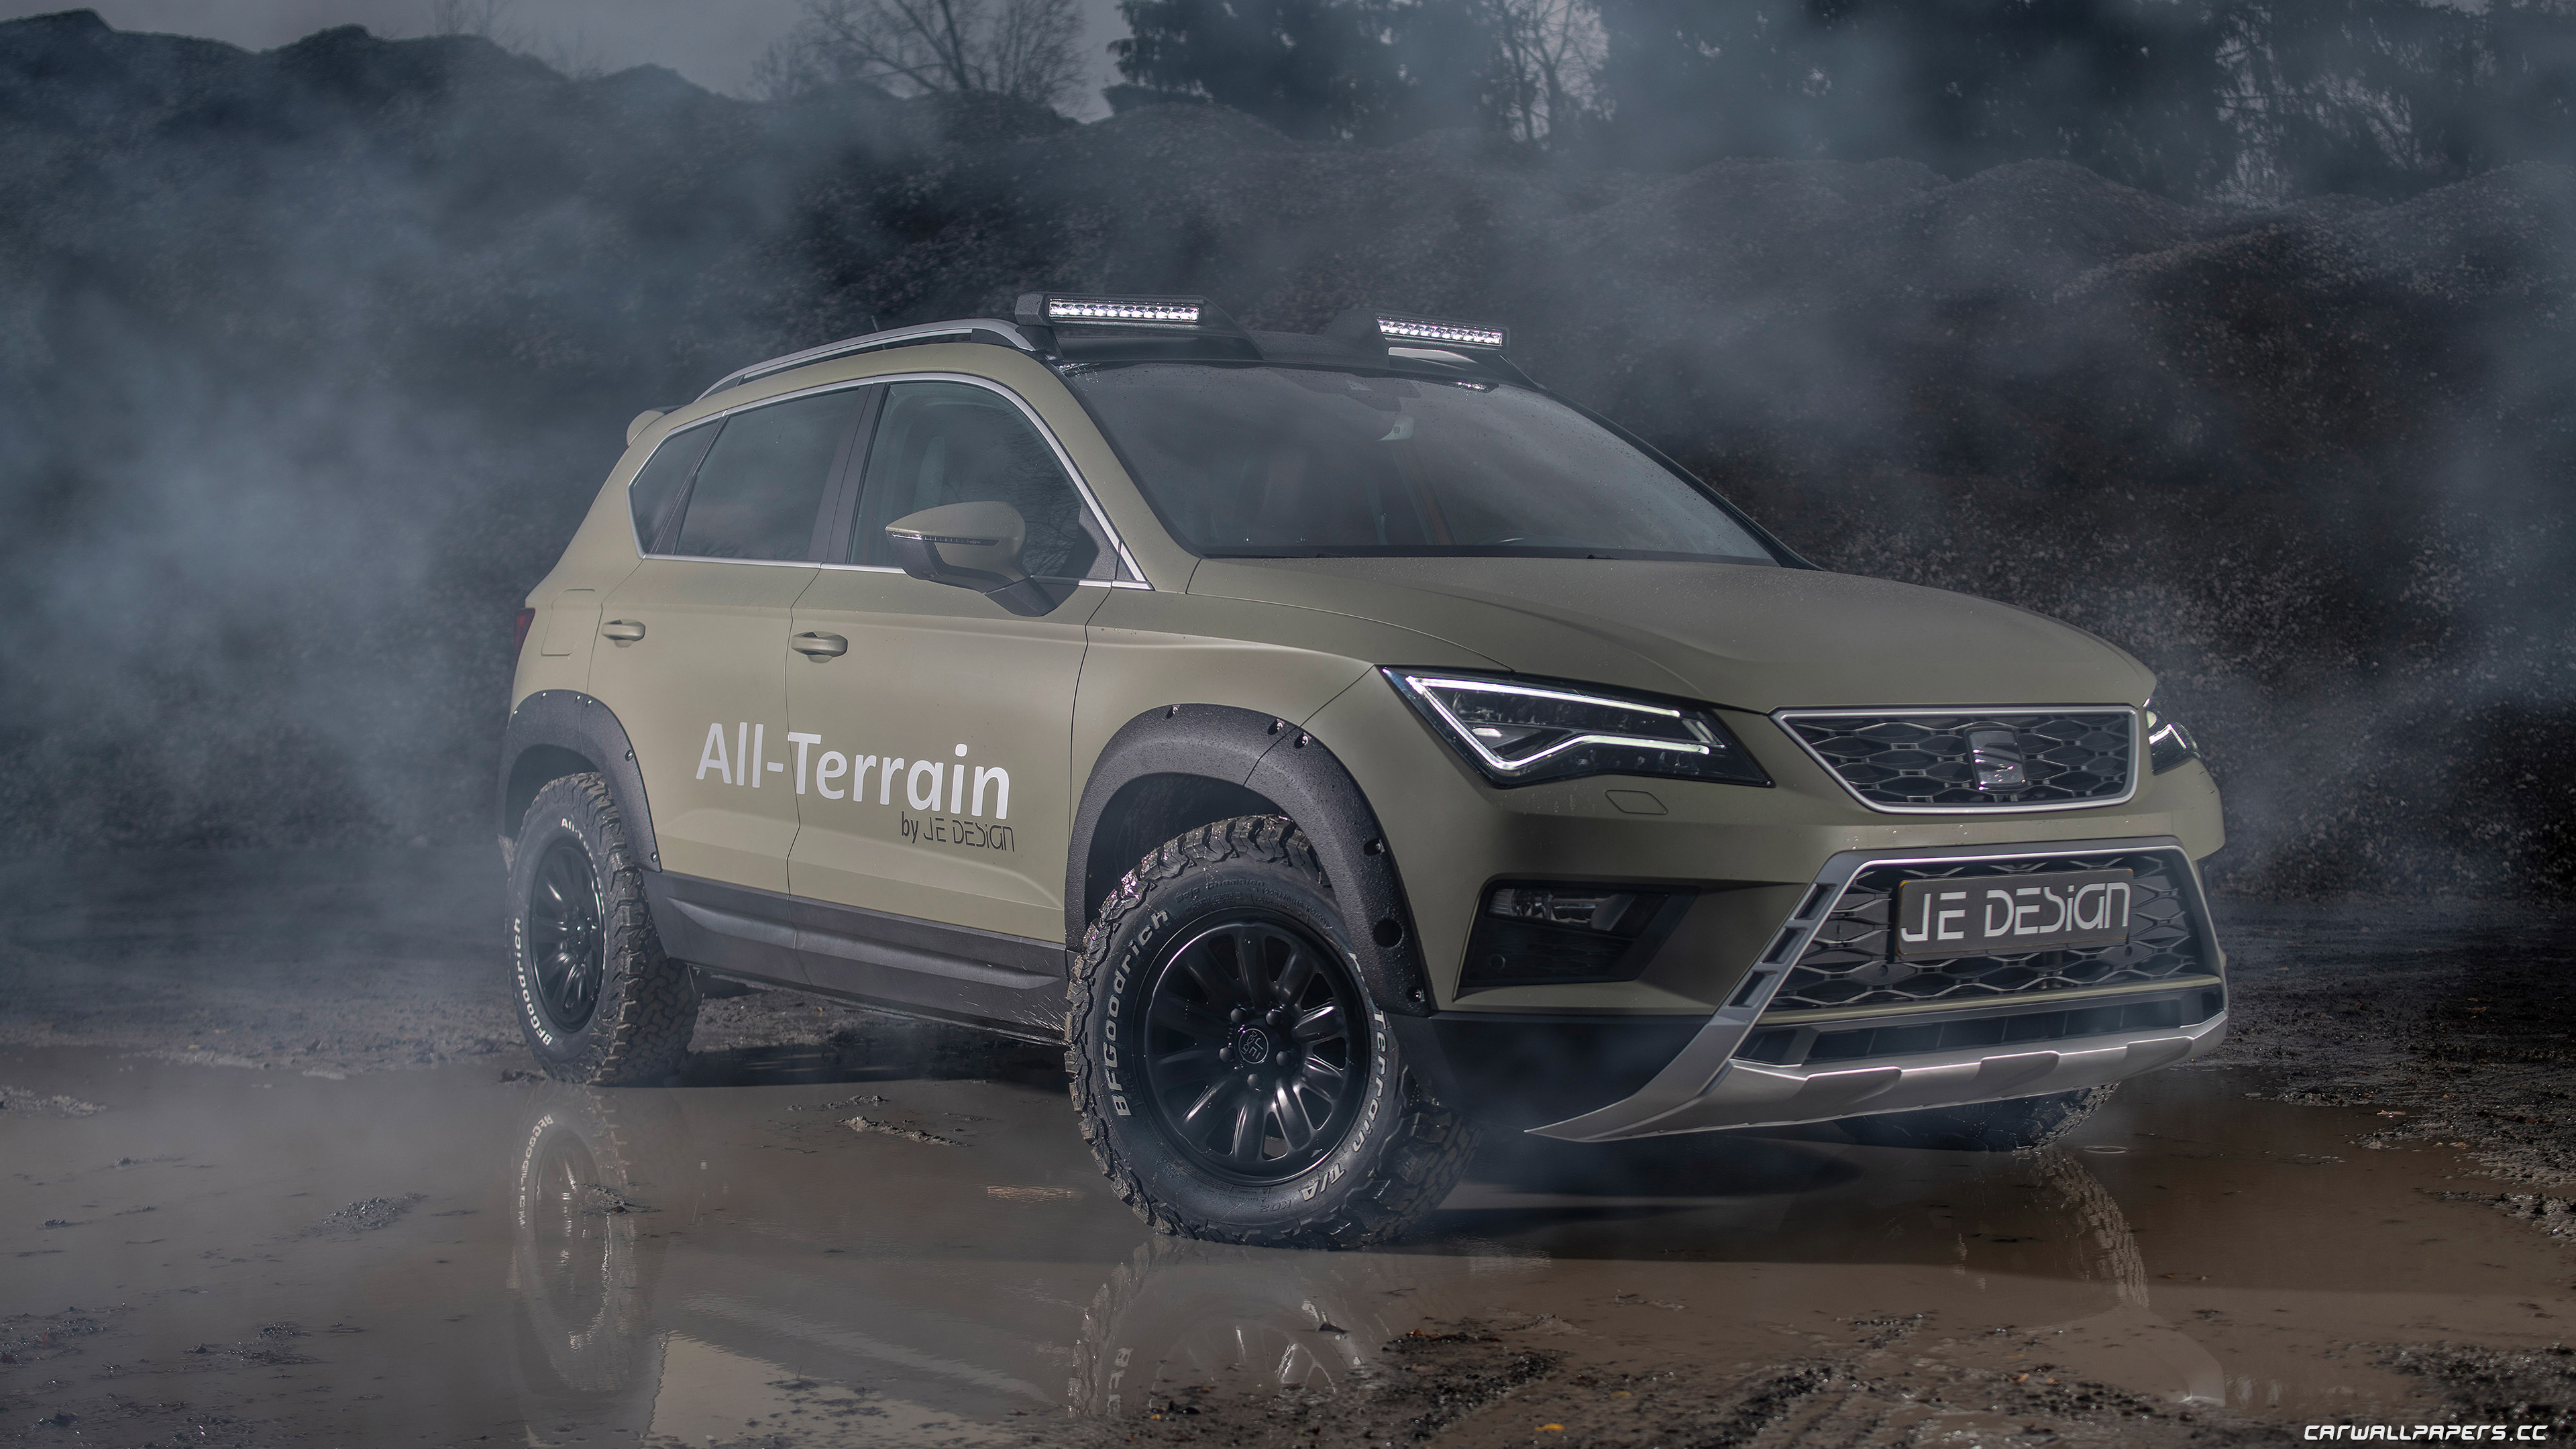 Car Tuning Desktop Wallpapers Je Design Seat Ateca All